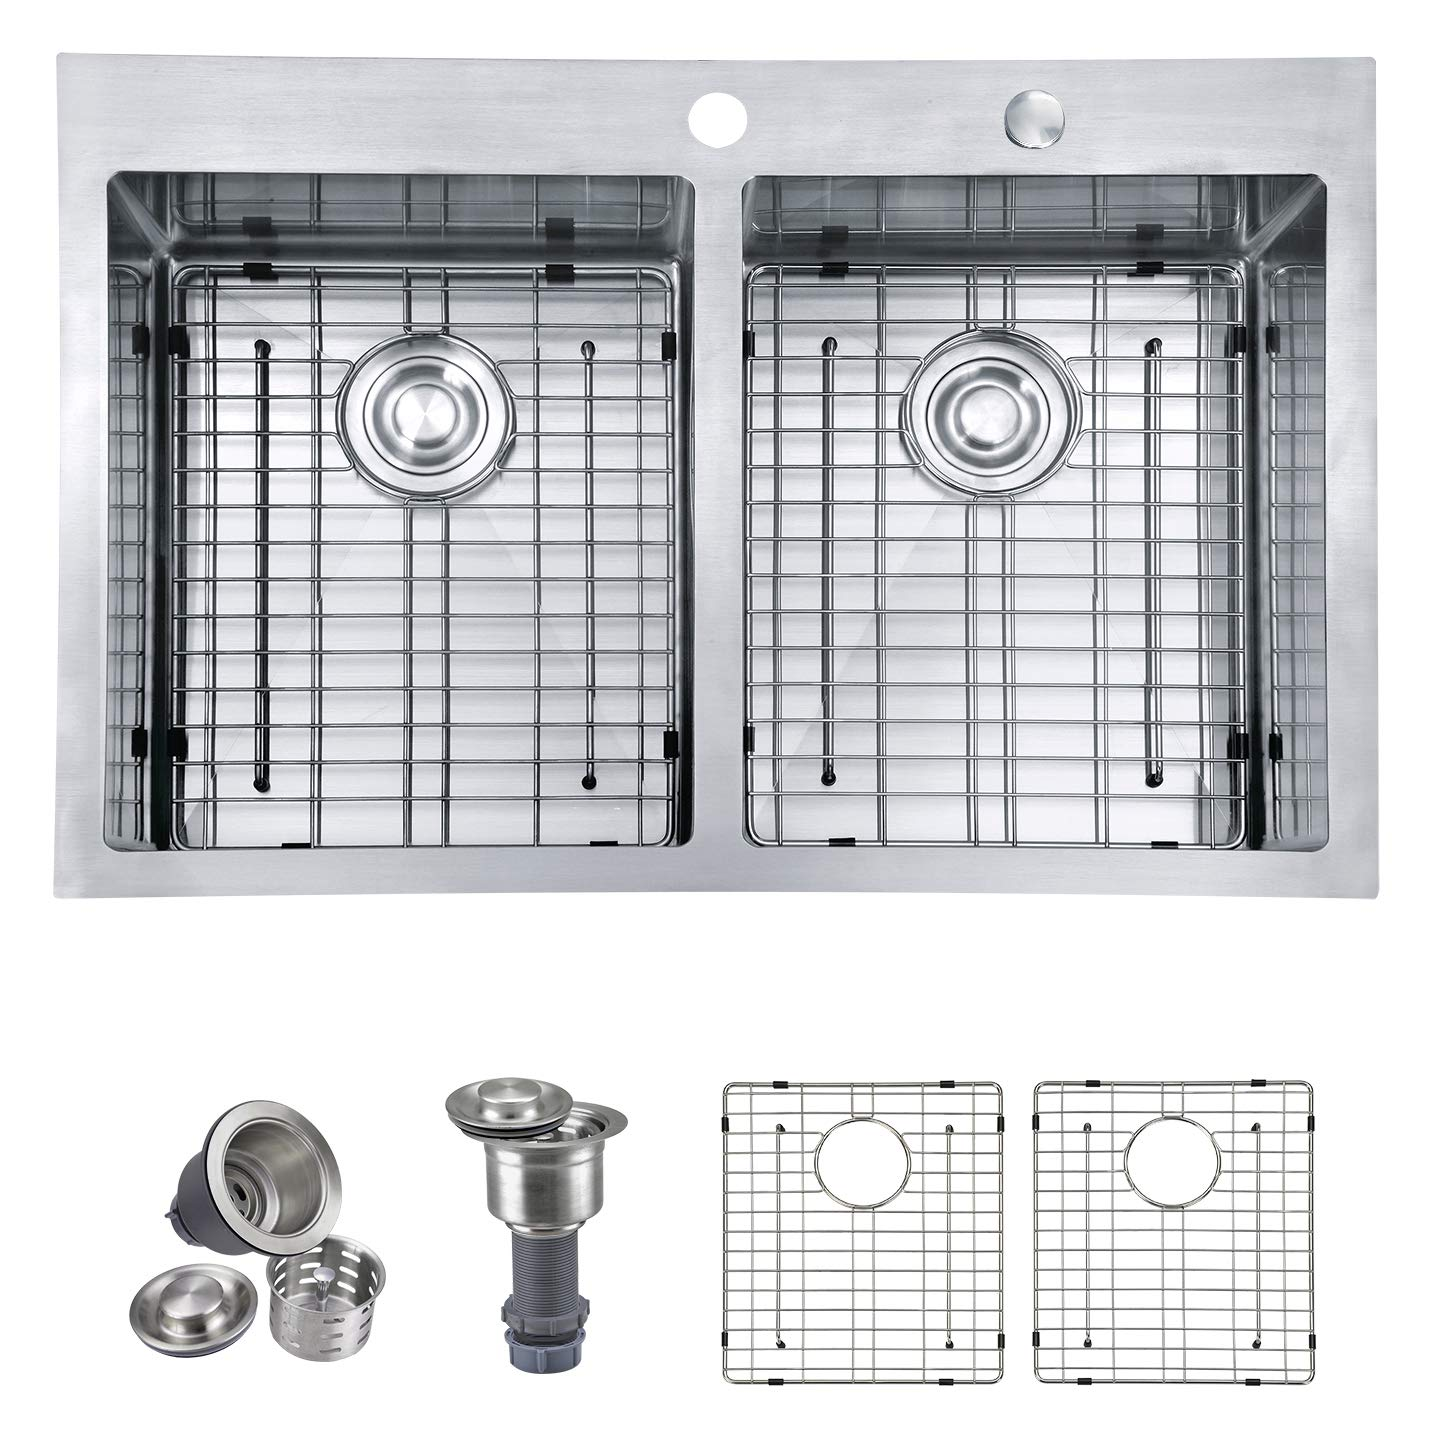 MOWA HTD33DE Upgraded Perfect Drainage Handmade 33'' 16 Gauge Stainless Steel Topmount 50/50 Double Bowl Kitchen Sink, Modern Tight-Radius Style, Commercial Deep Basin, w/Sink Bottom Grids & Strainers by MOWA (Image #8)